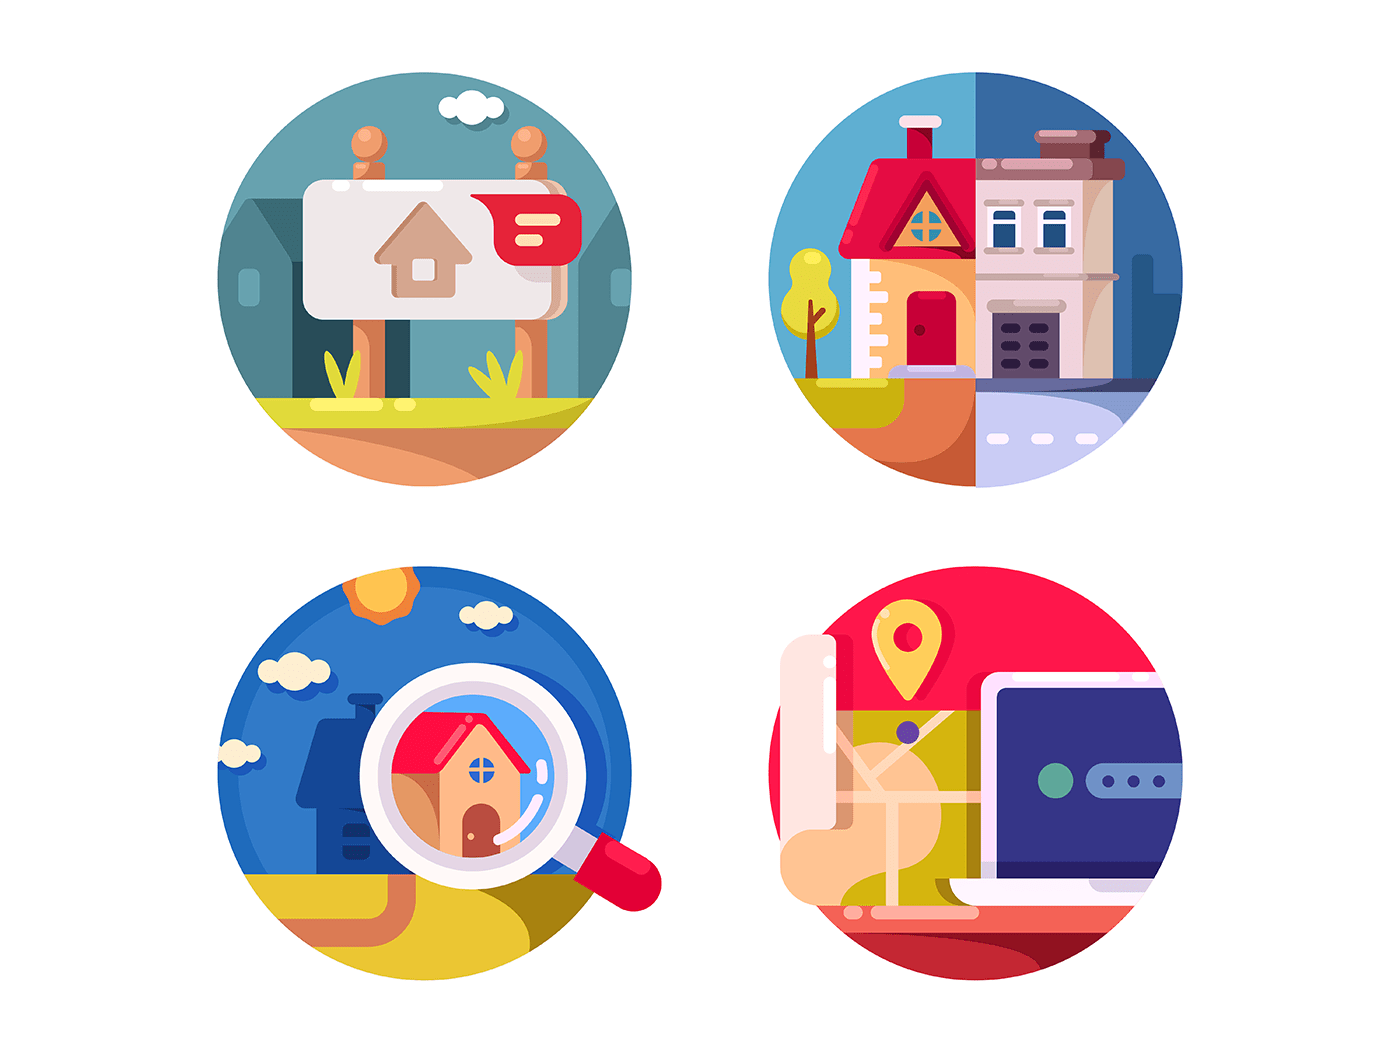 Real estate market icons